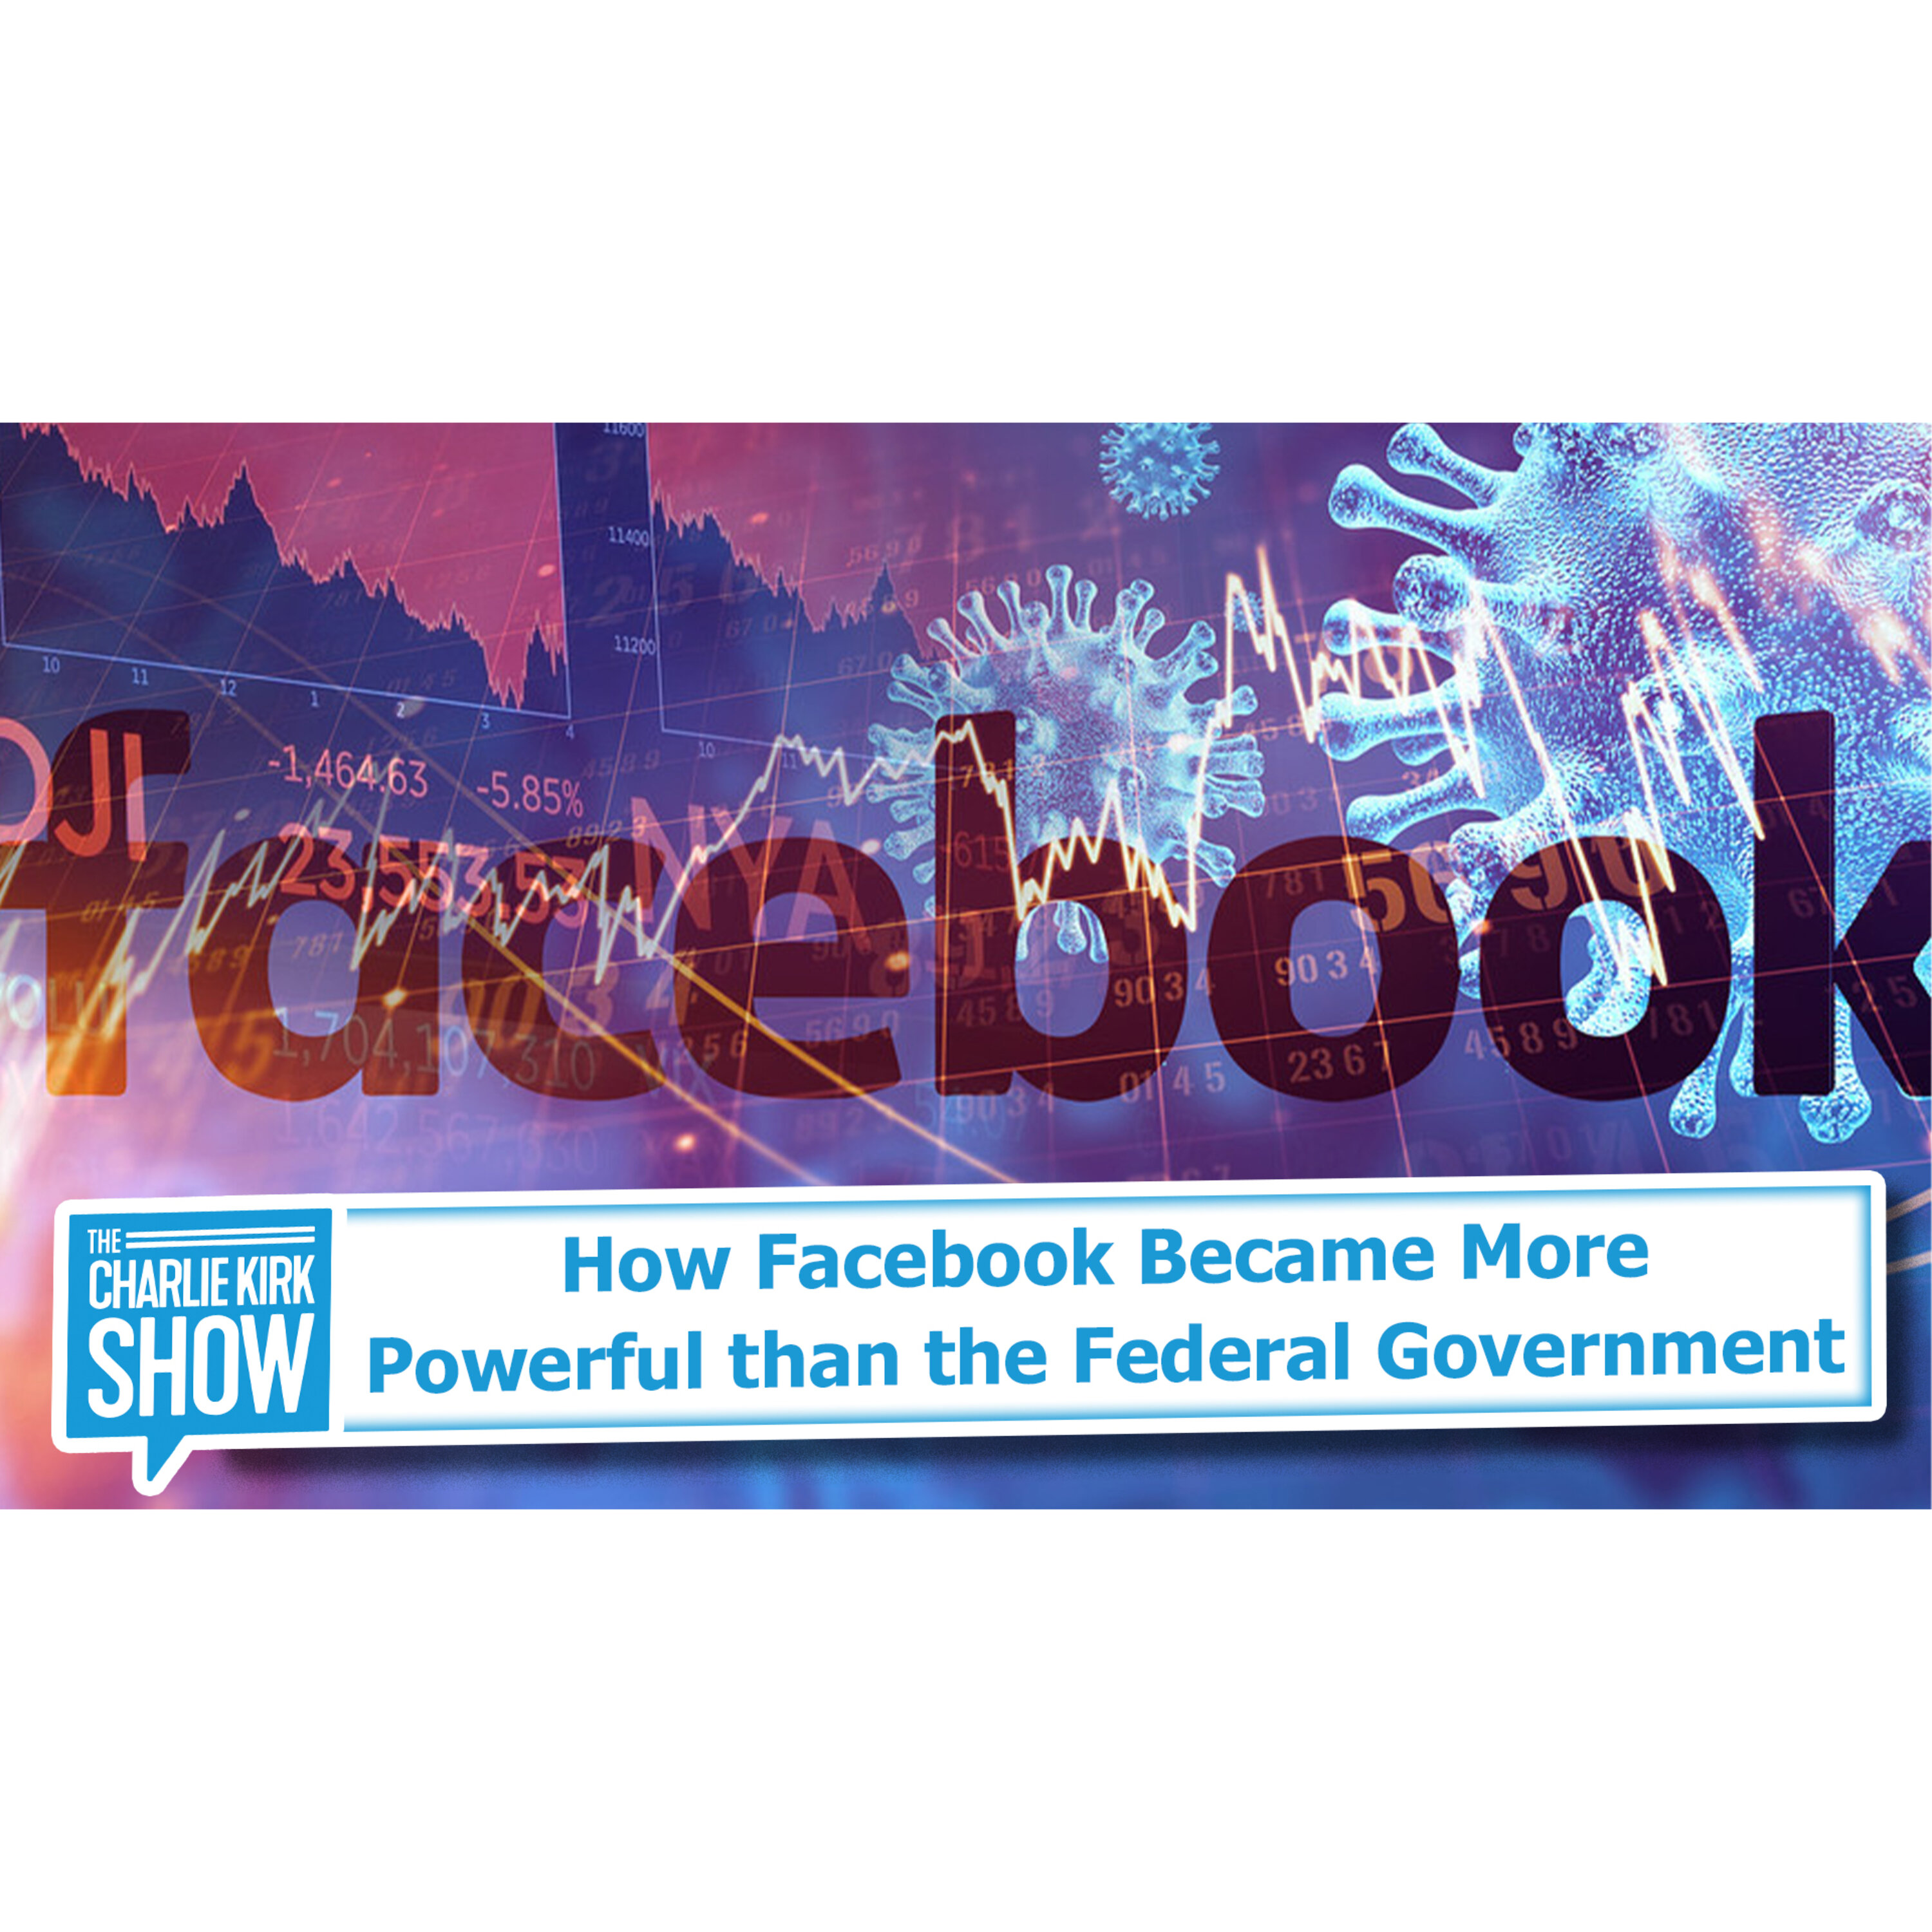 How Facebook Became More Powerful than the Federal Government